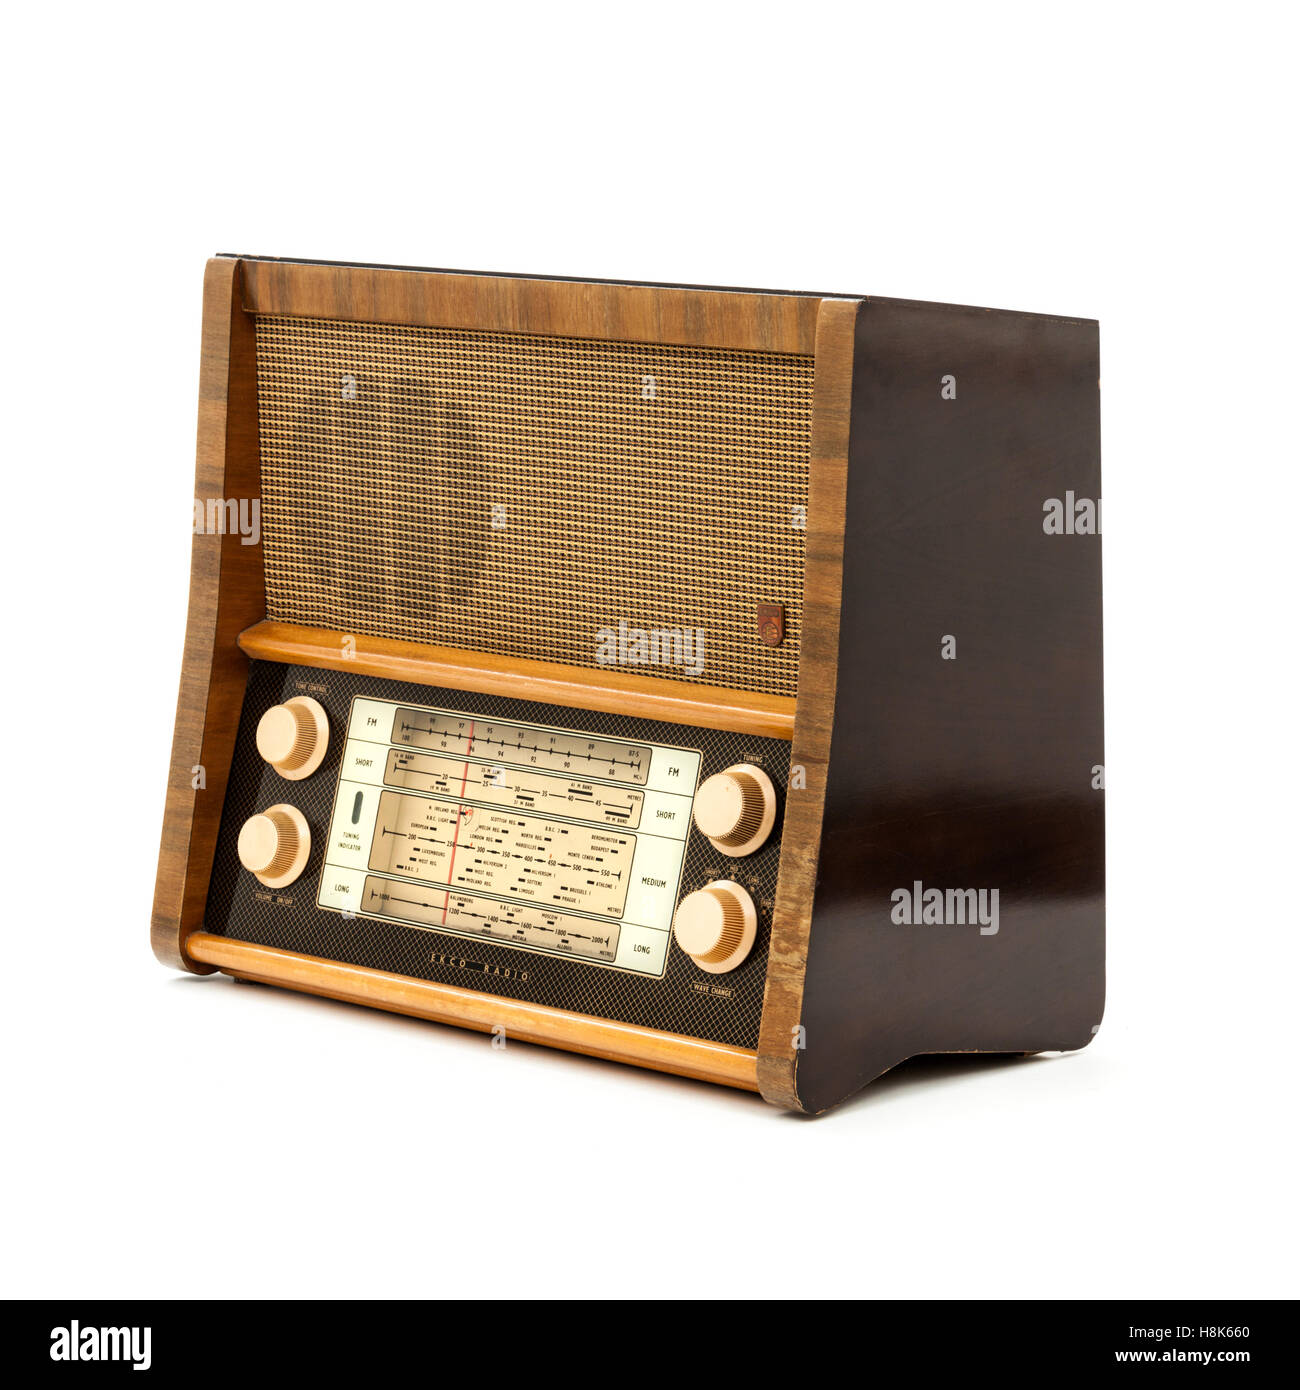 Ekco A239 valve radio from the 1950s - Stock Image